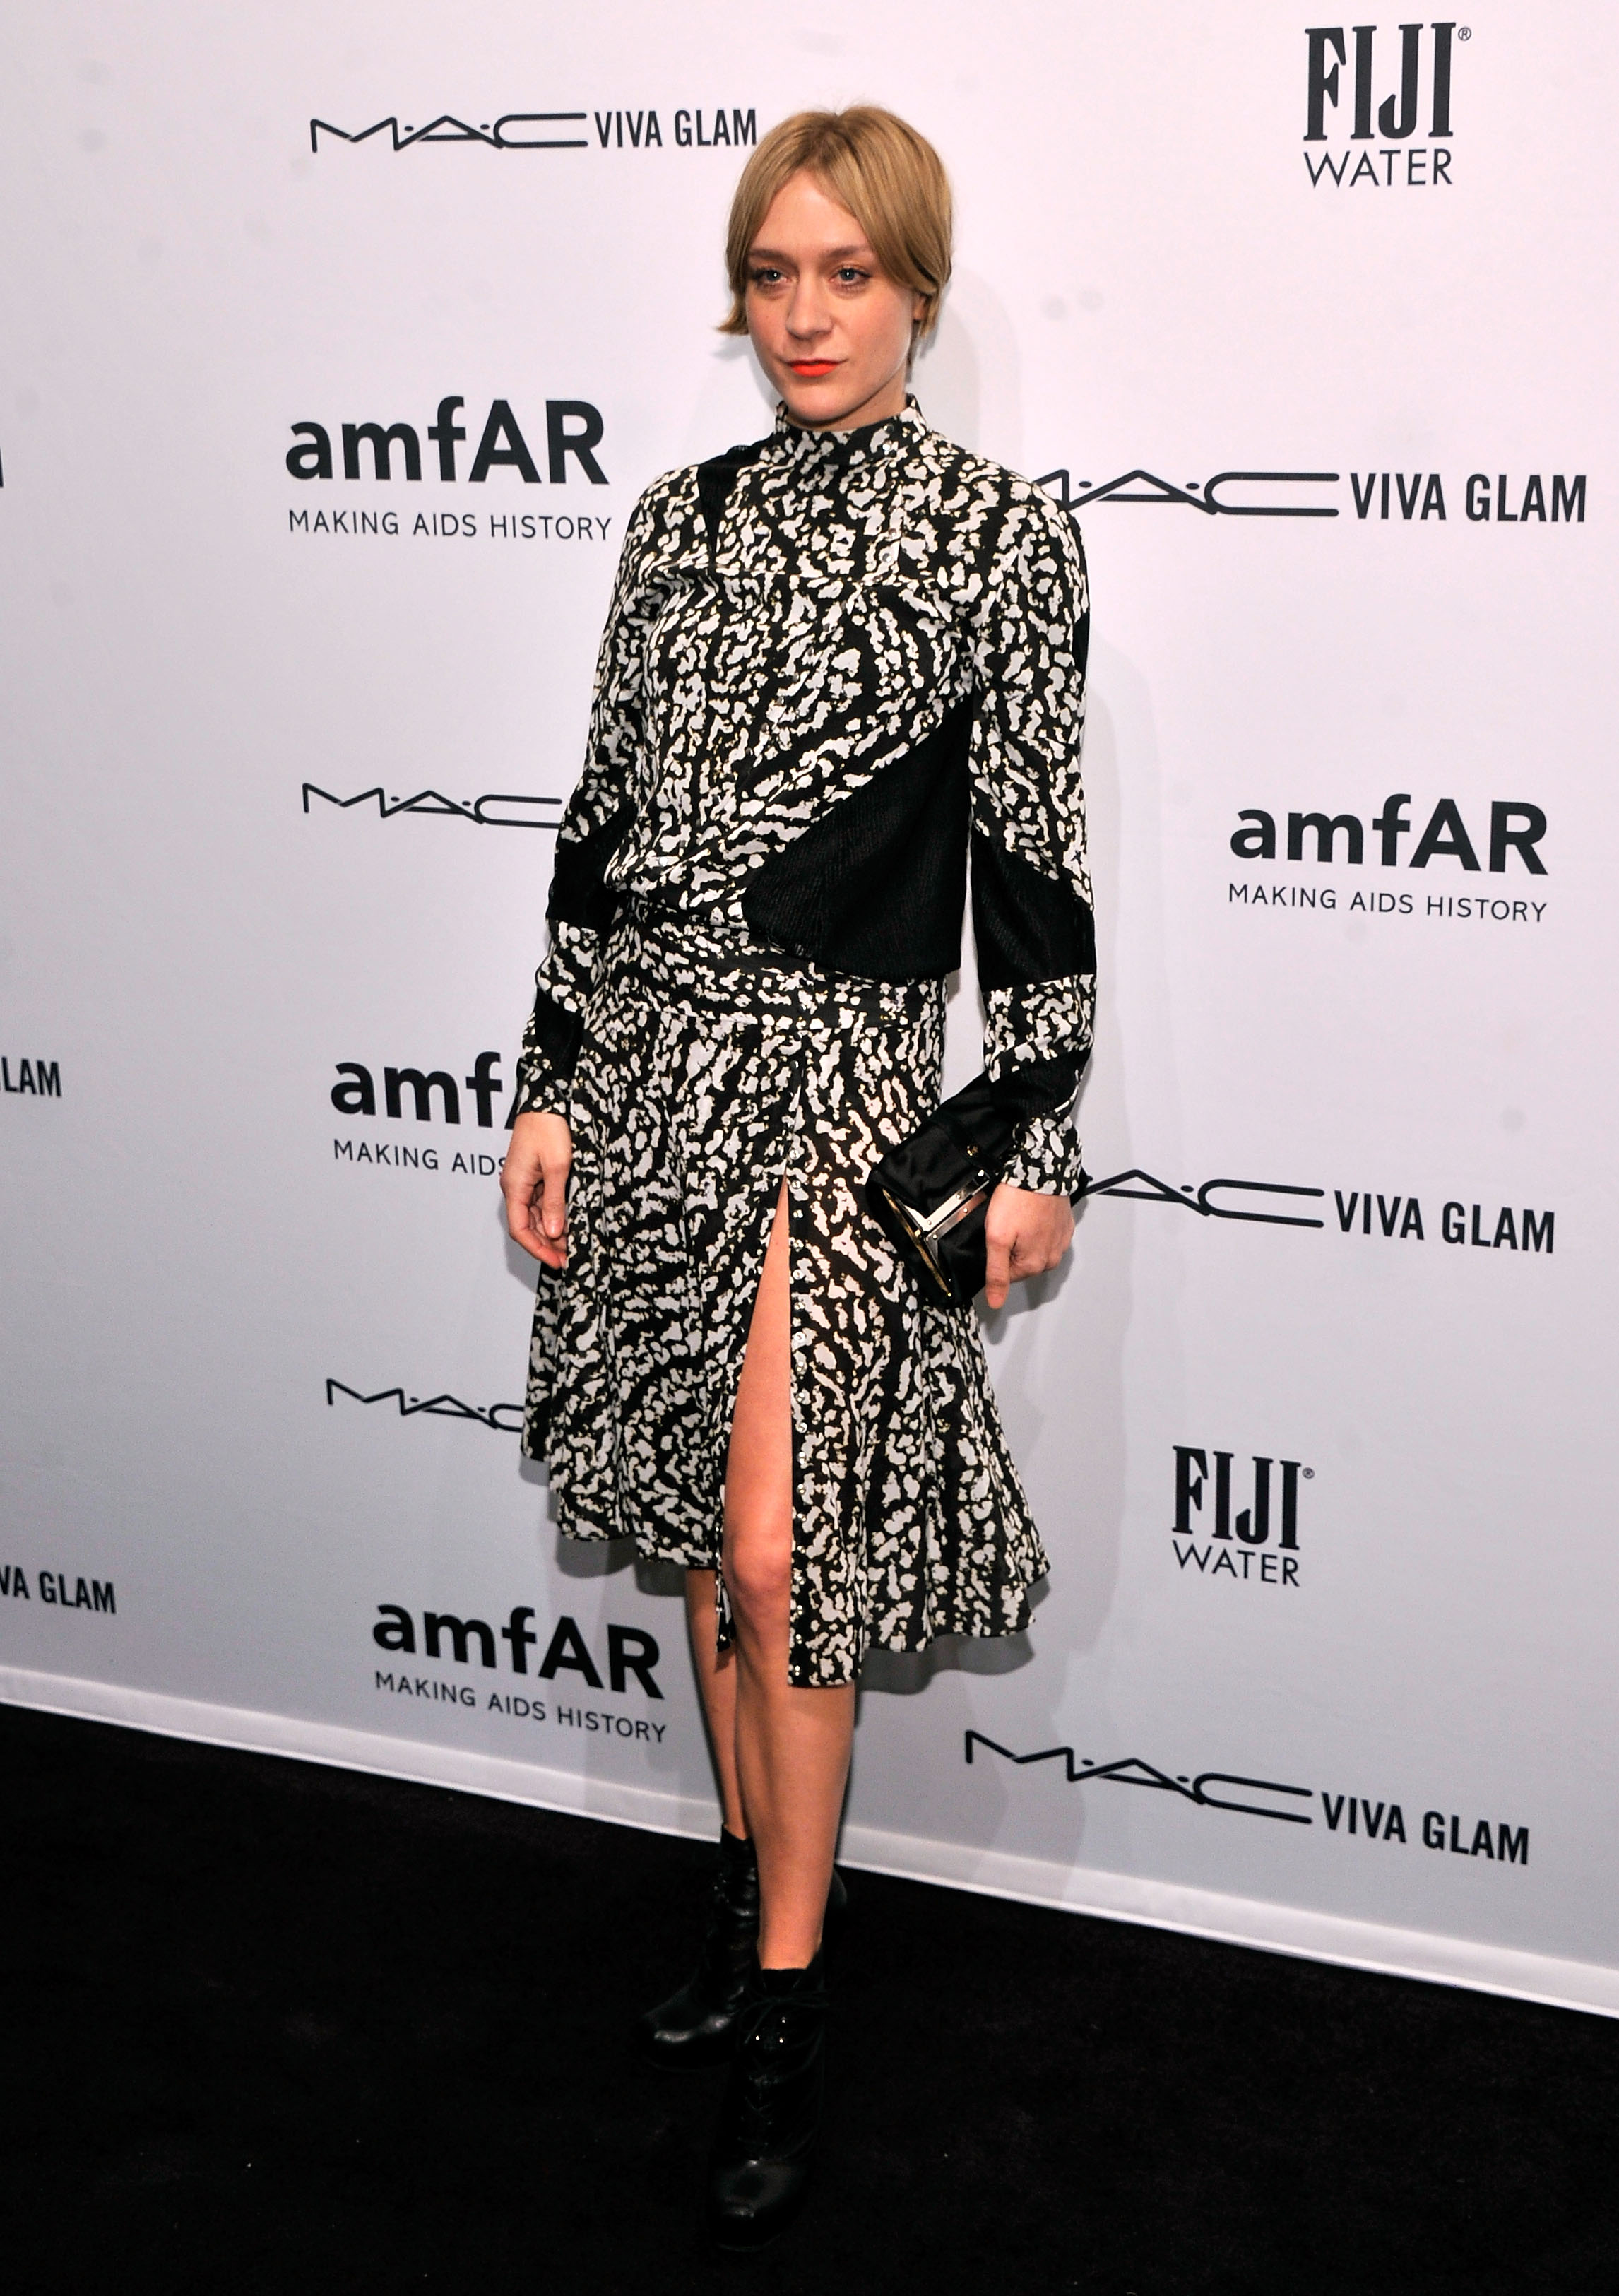 Chloë Sevigny wore a black and white dress to the amfAR New York Gala on Wednesday.